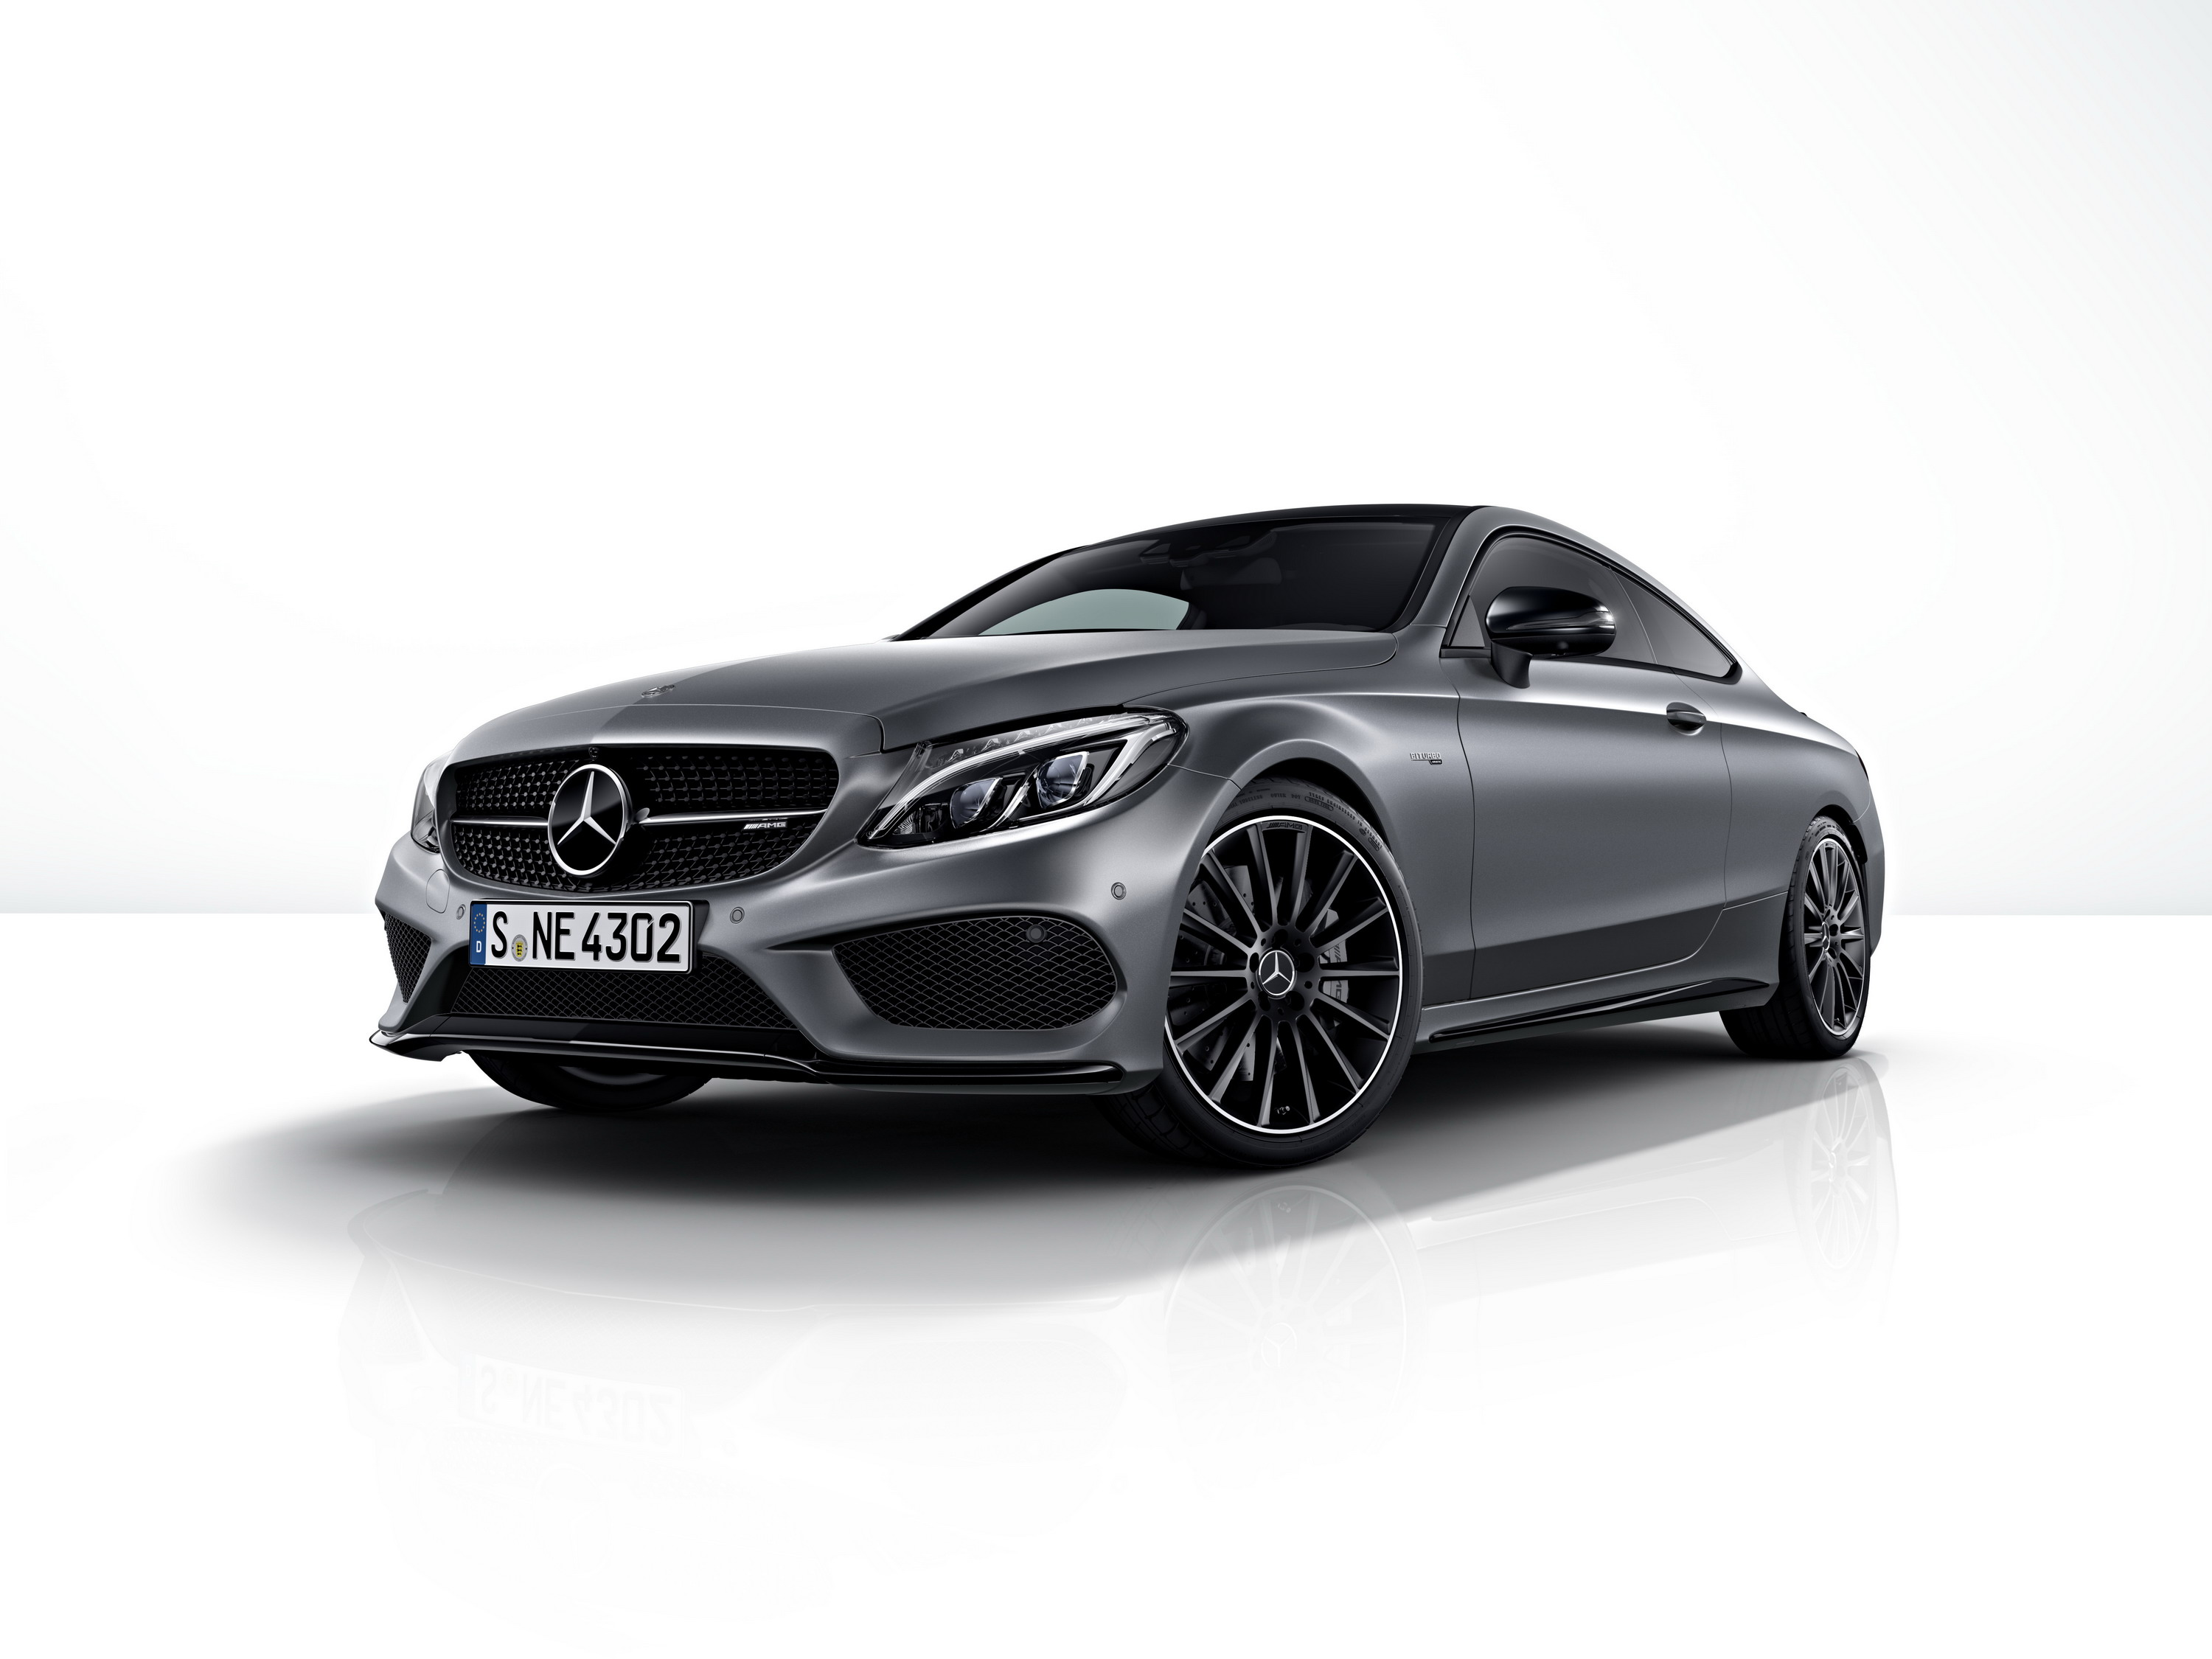 2017 Mercedes-AMG C 43 4MATIC Coupé And Cabriolet Night Edition ...